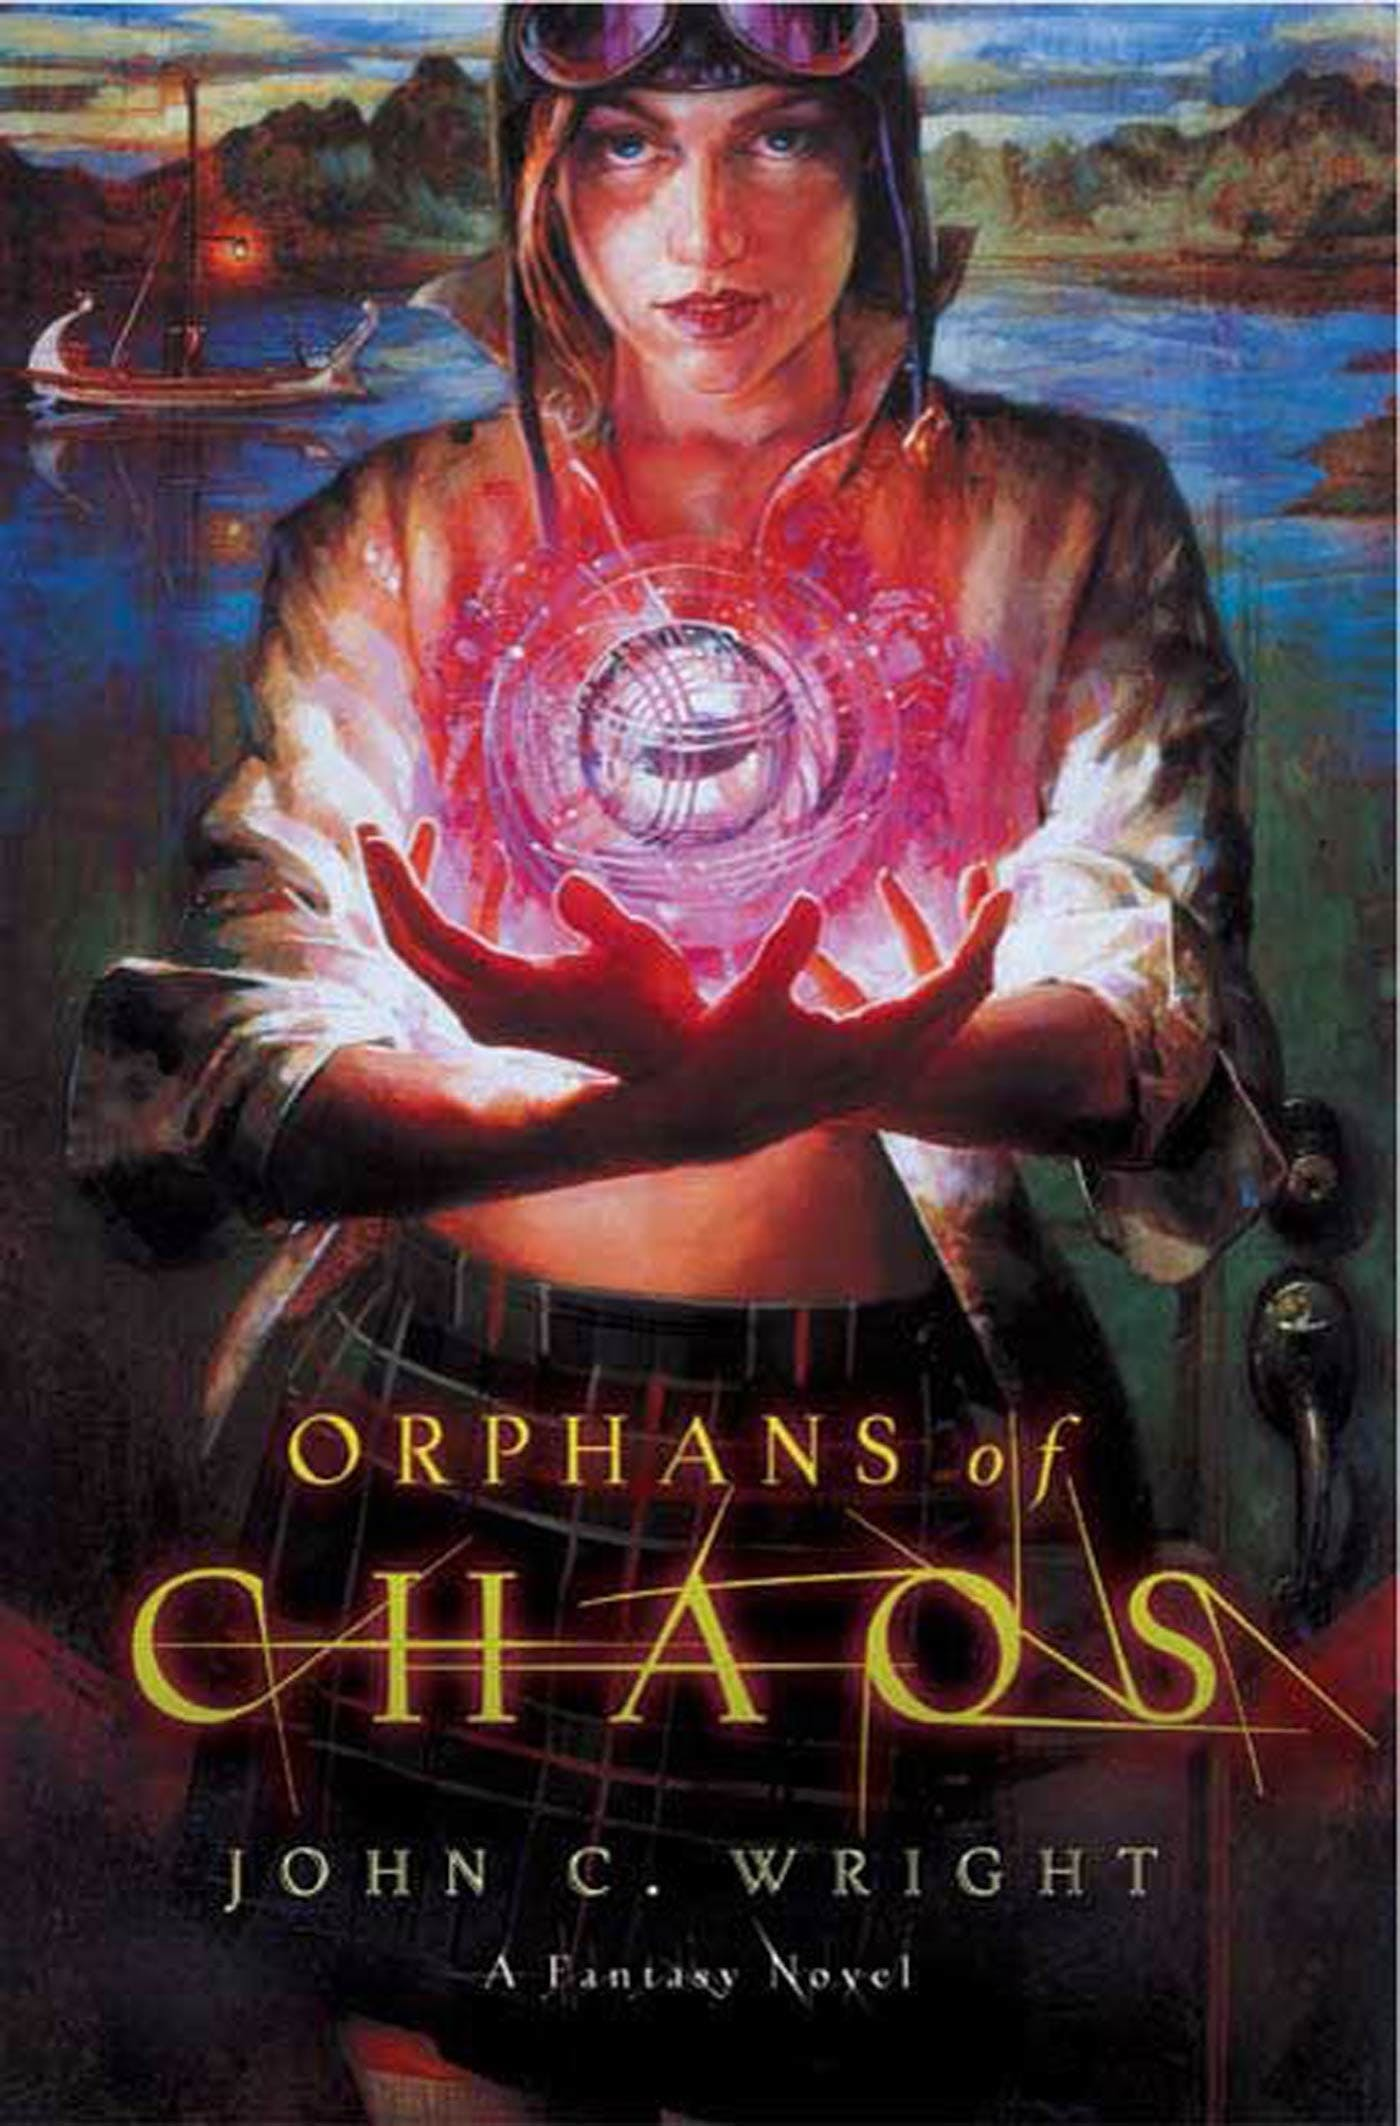 Image of Orphans of Chaos